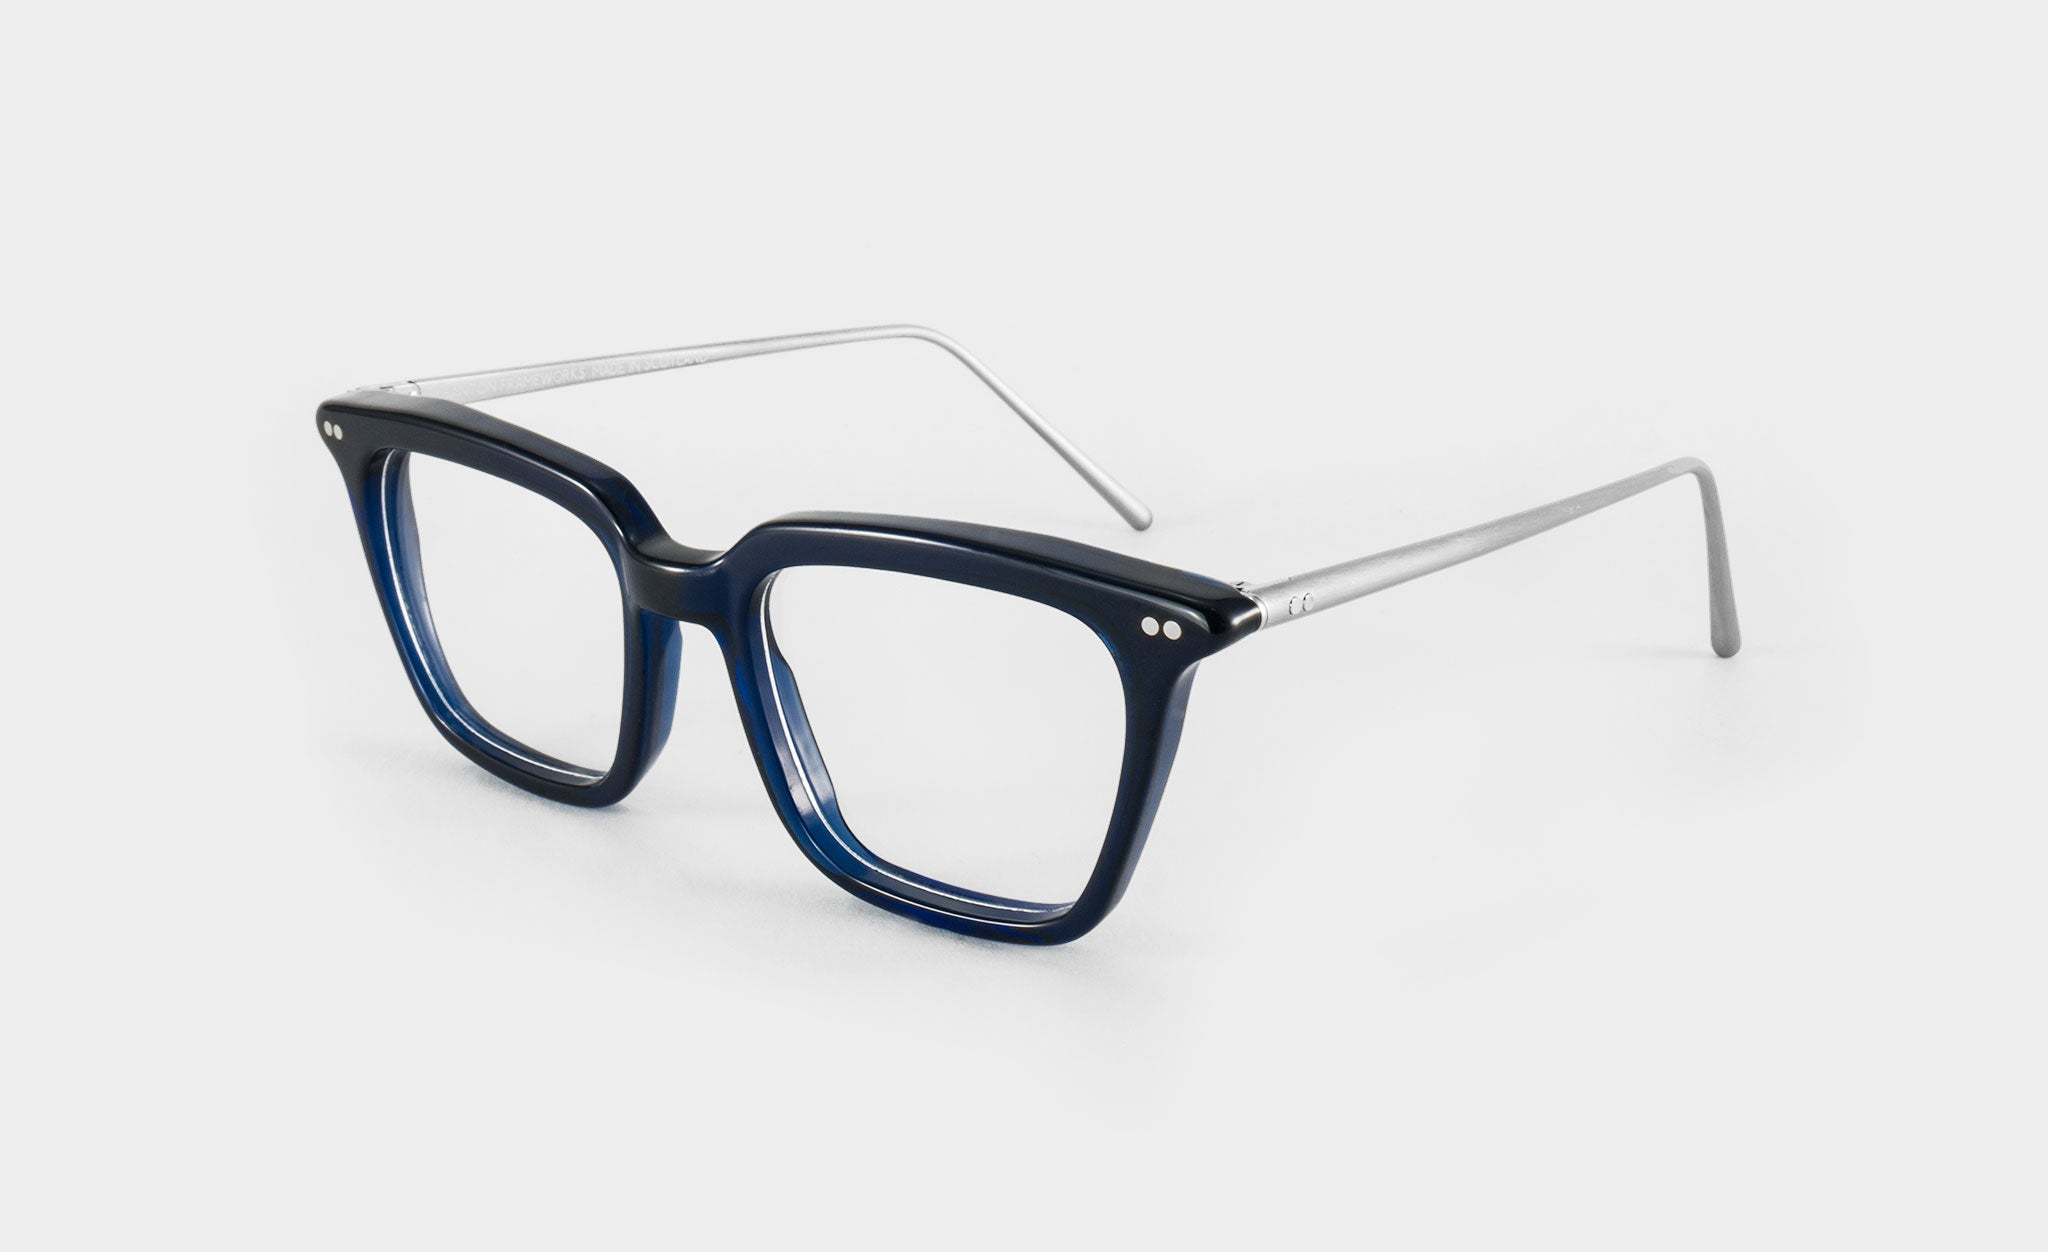 Womens-Blue-Glasses-Frame-side-view